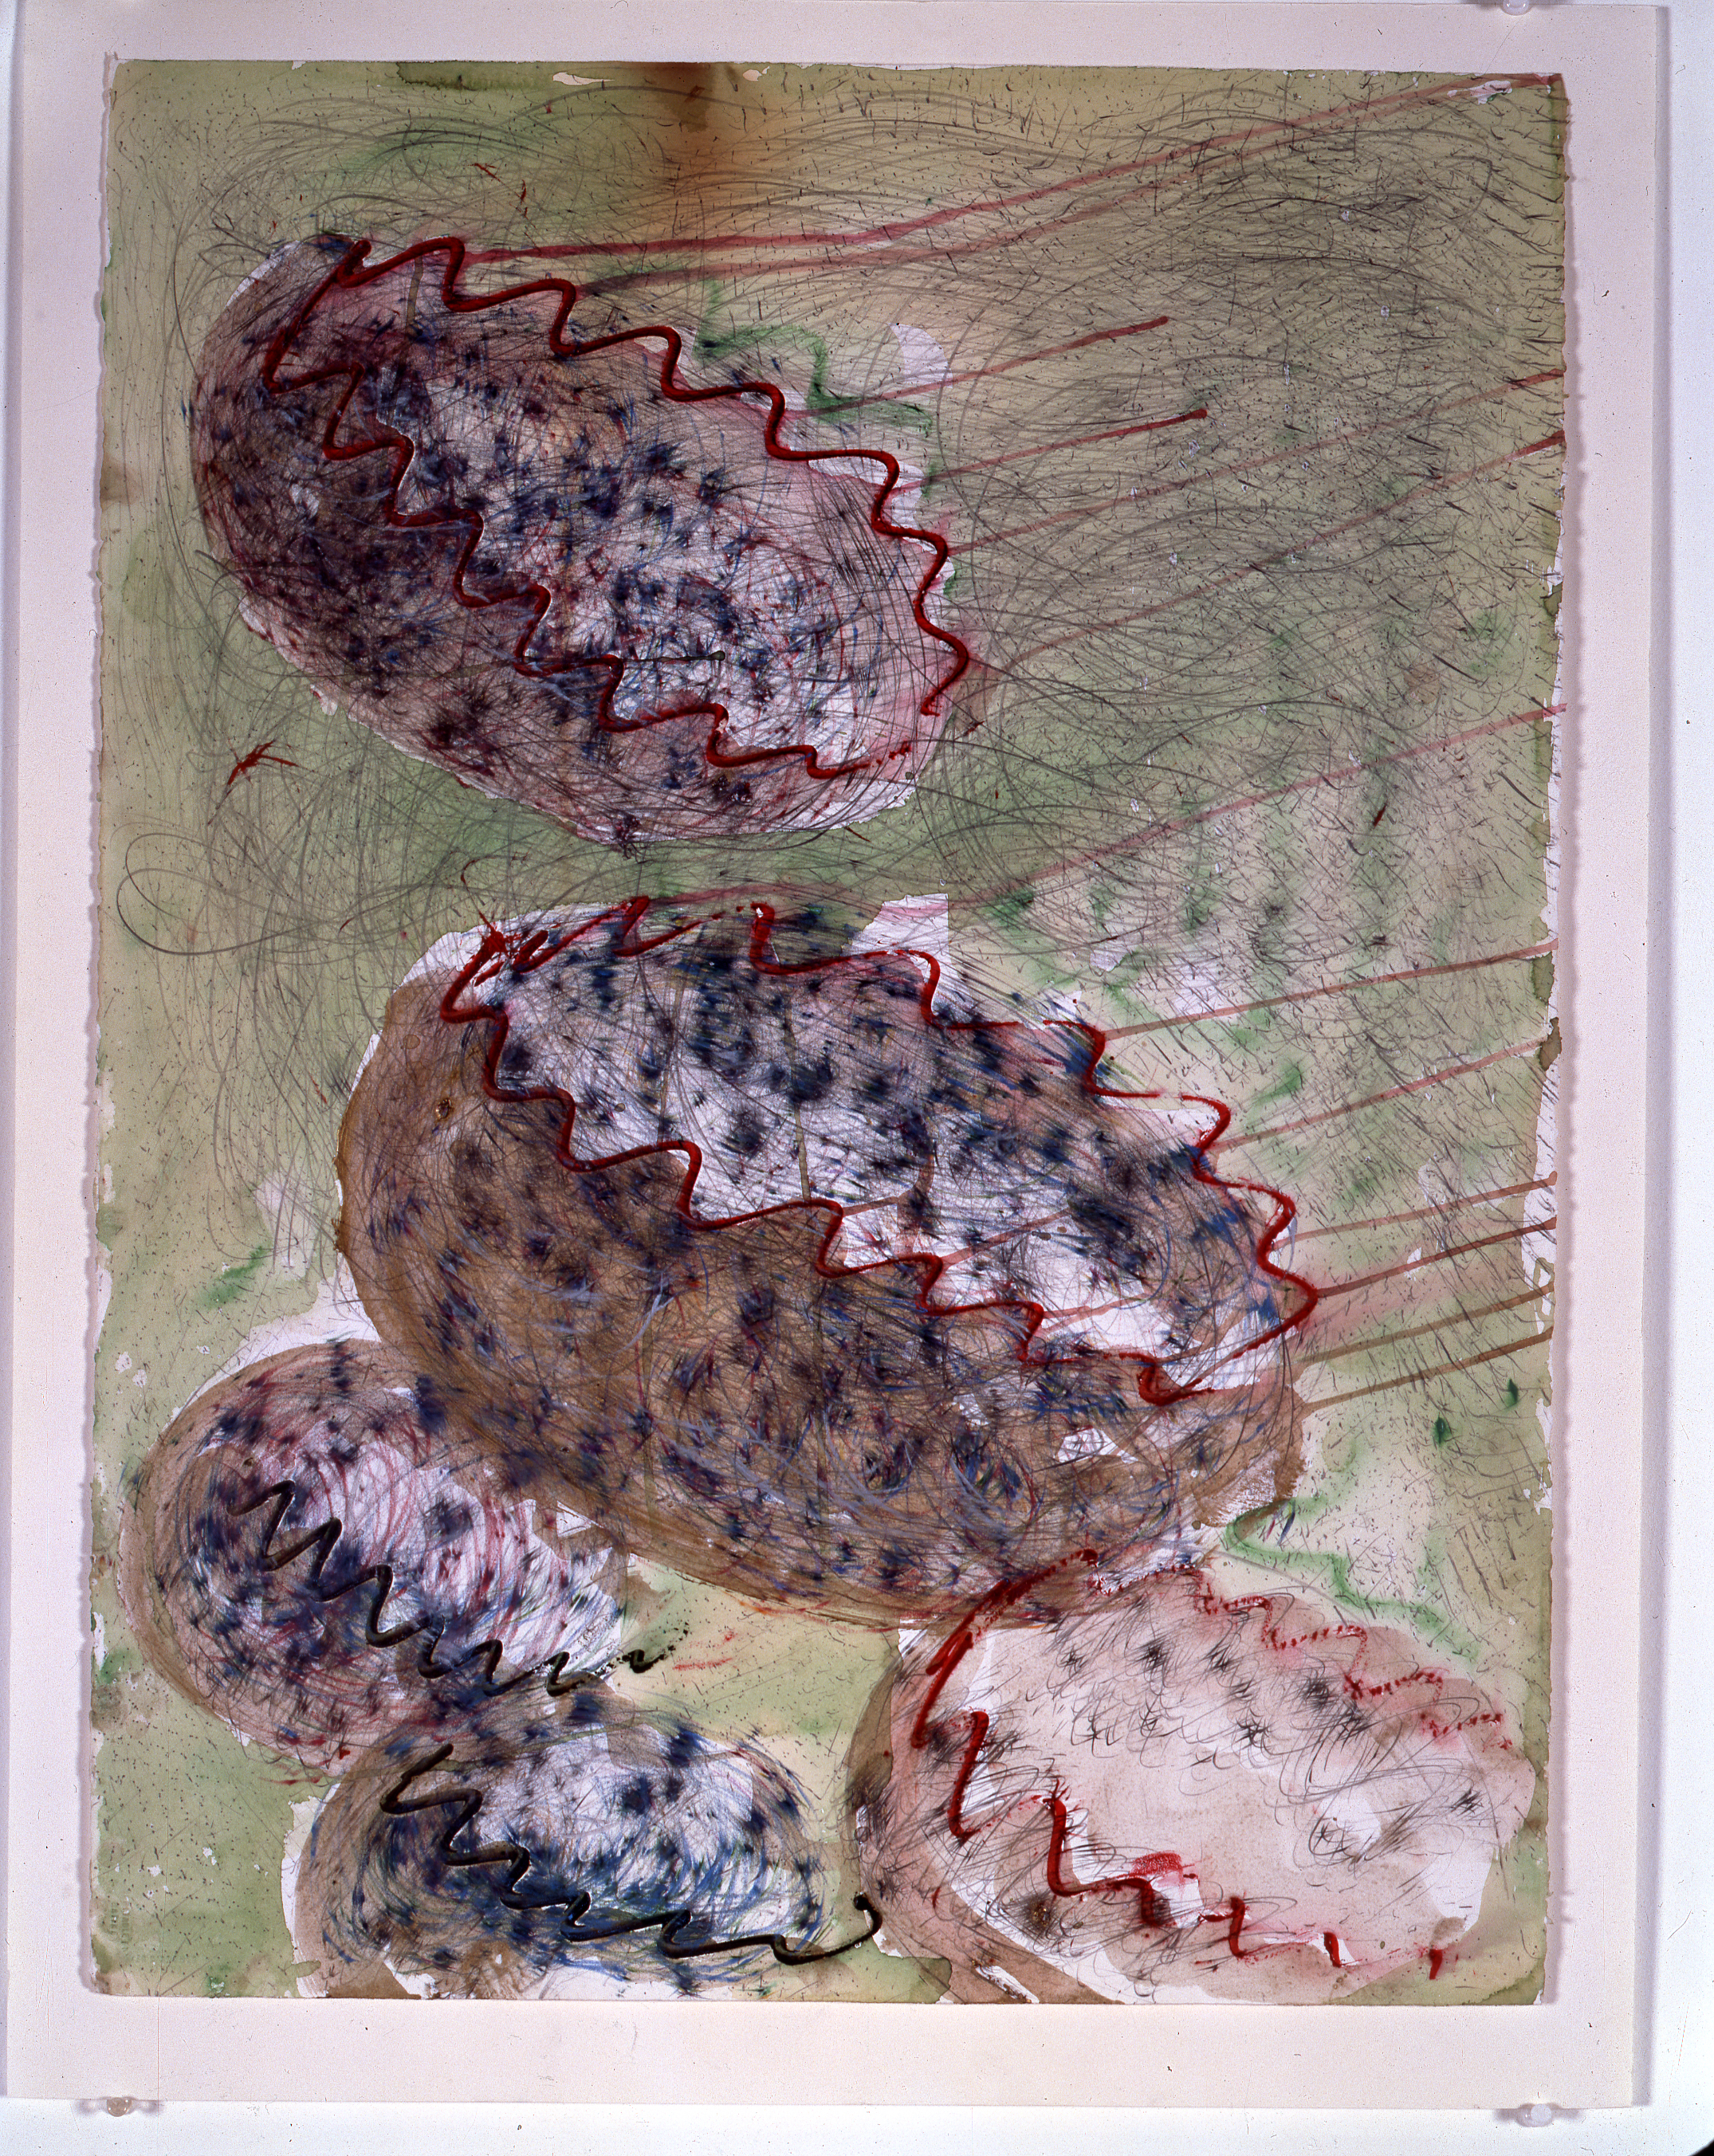 Dale Chihuly, Basket Drawing, (1984, mixed media on paper, 30 x 22 inches), DC.369